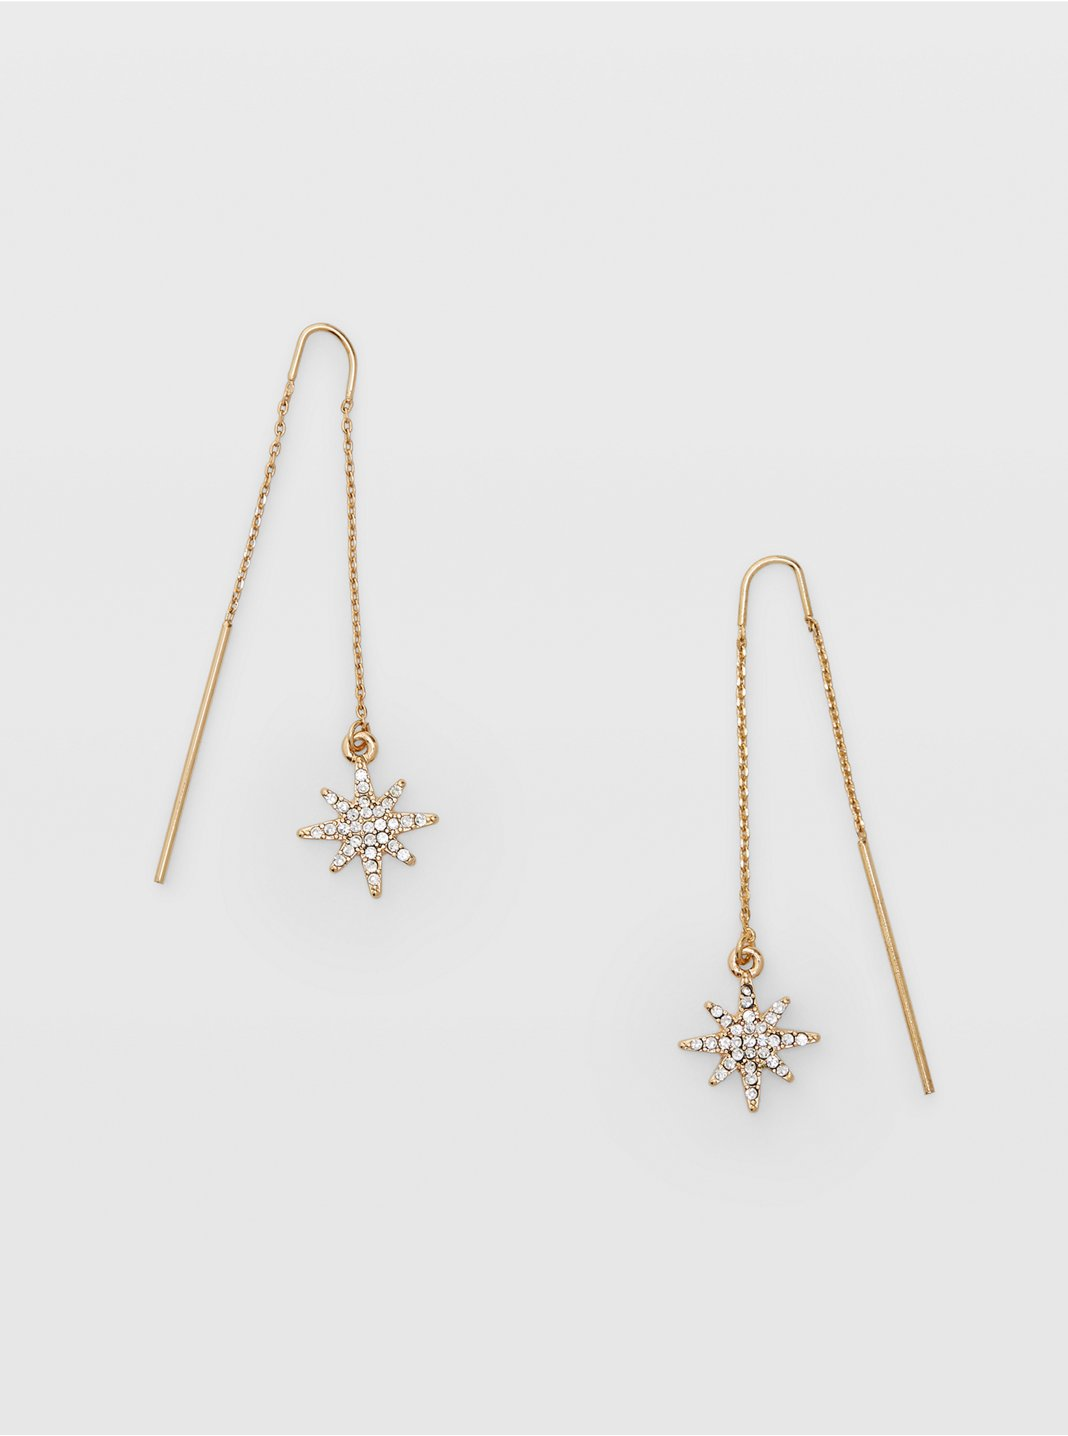 Starburst Threader Earring